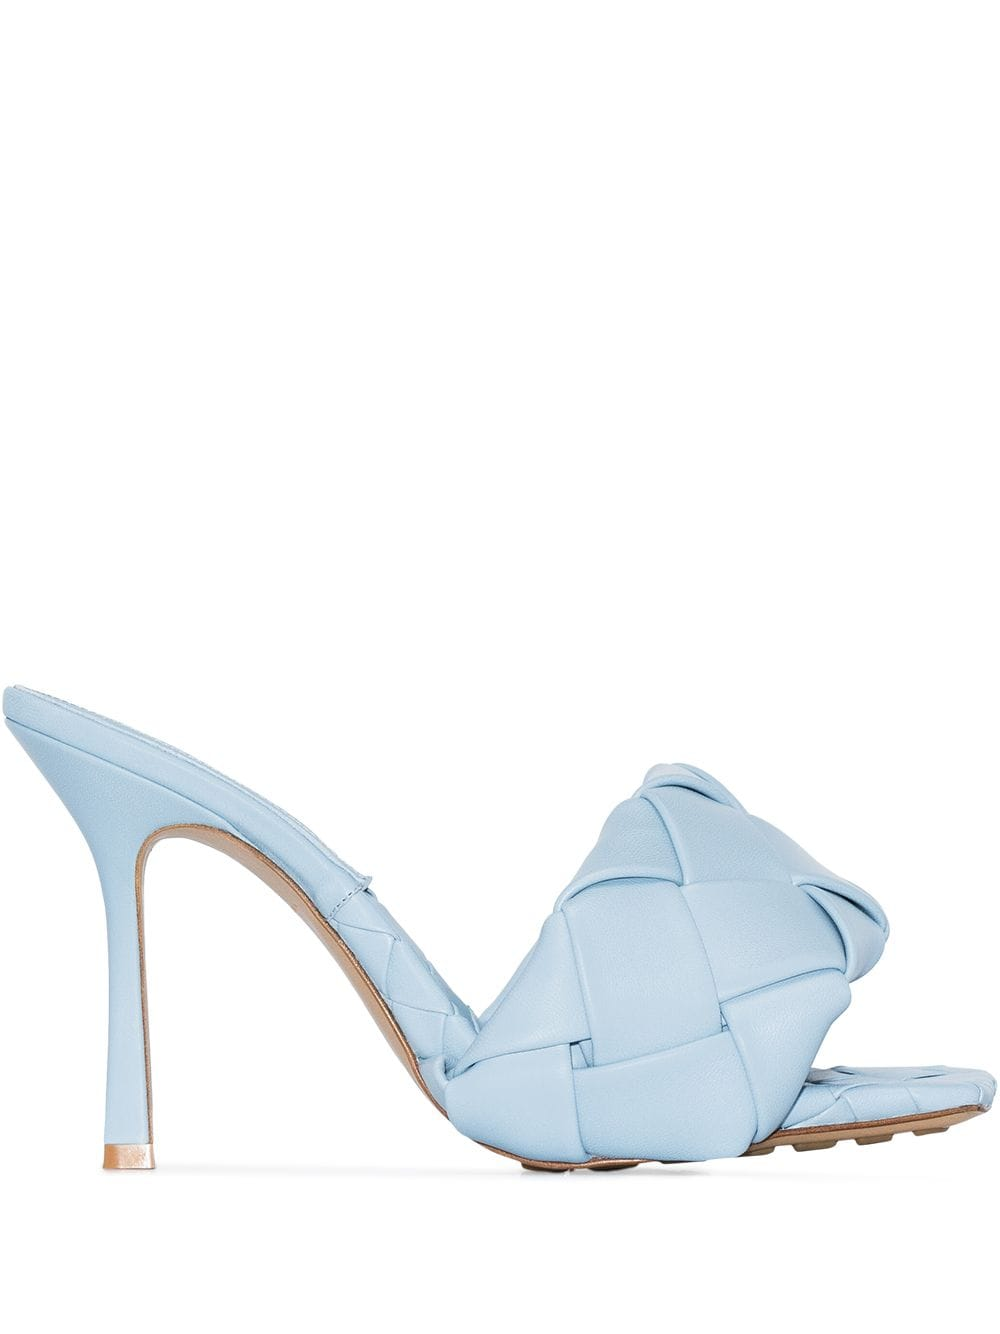 Bv Lido Leather Mules